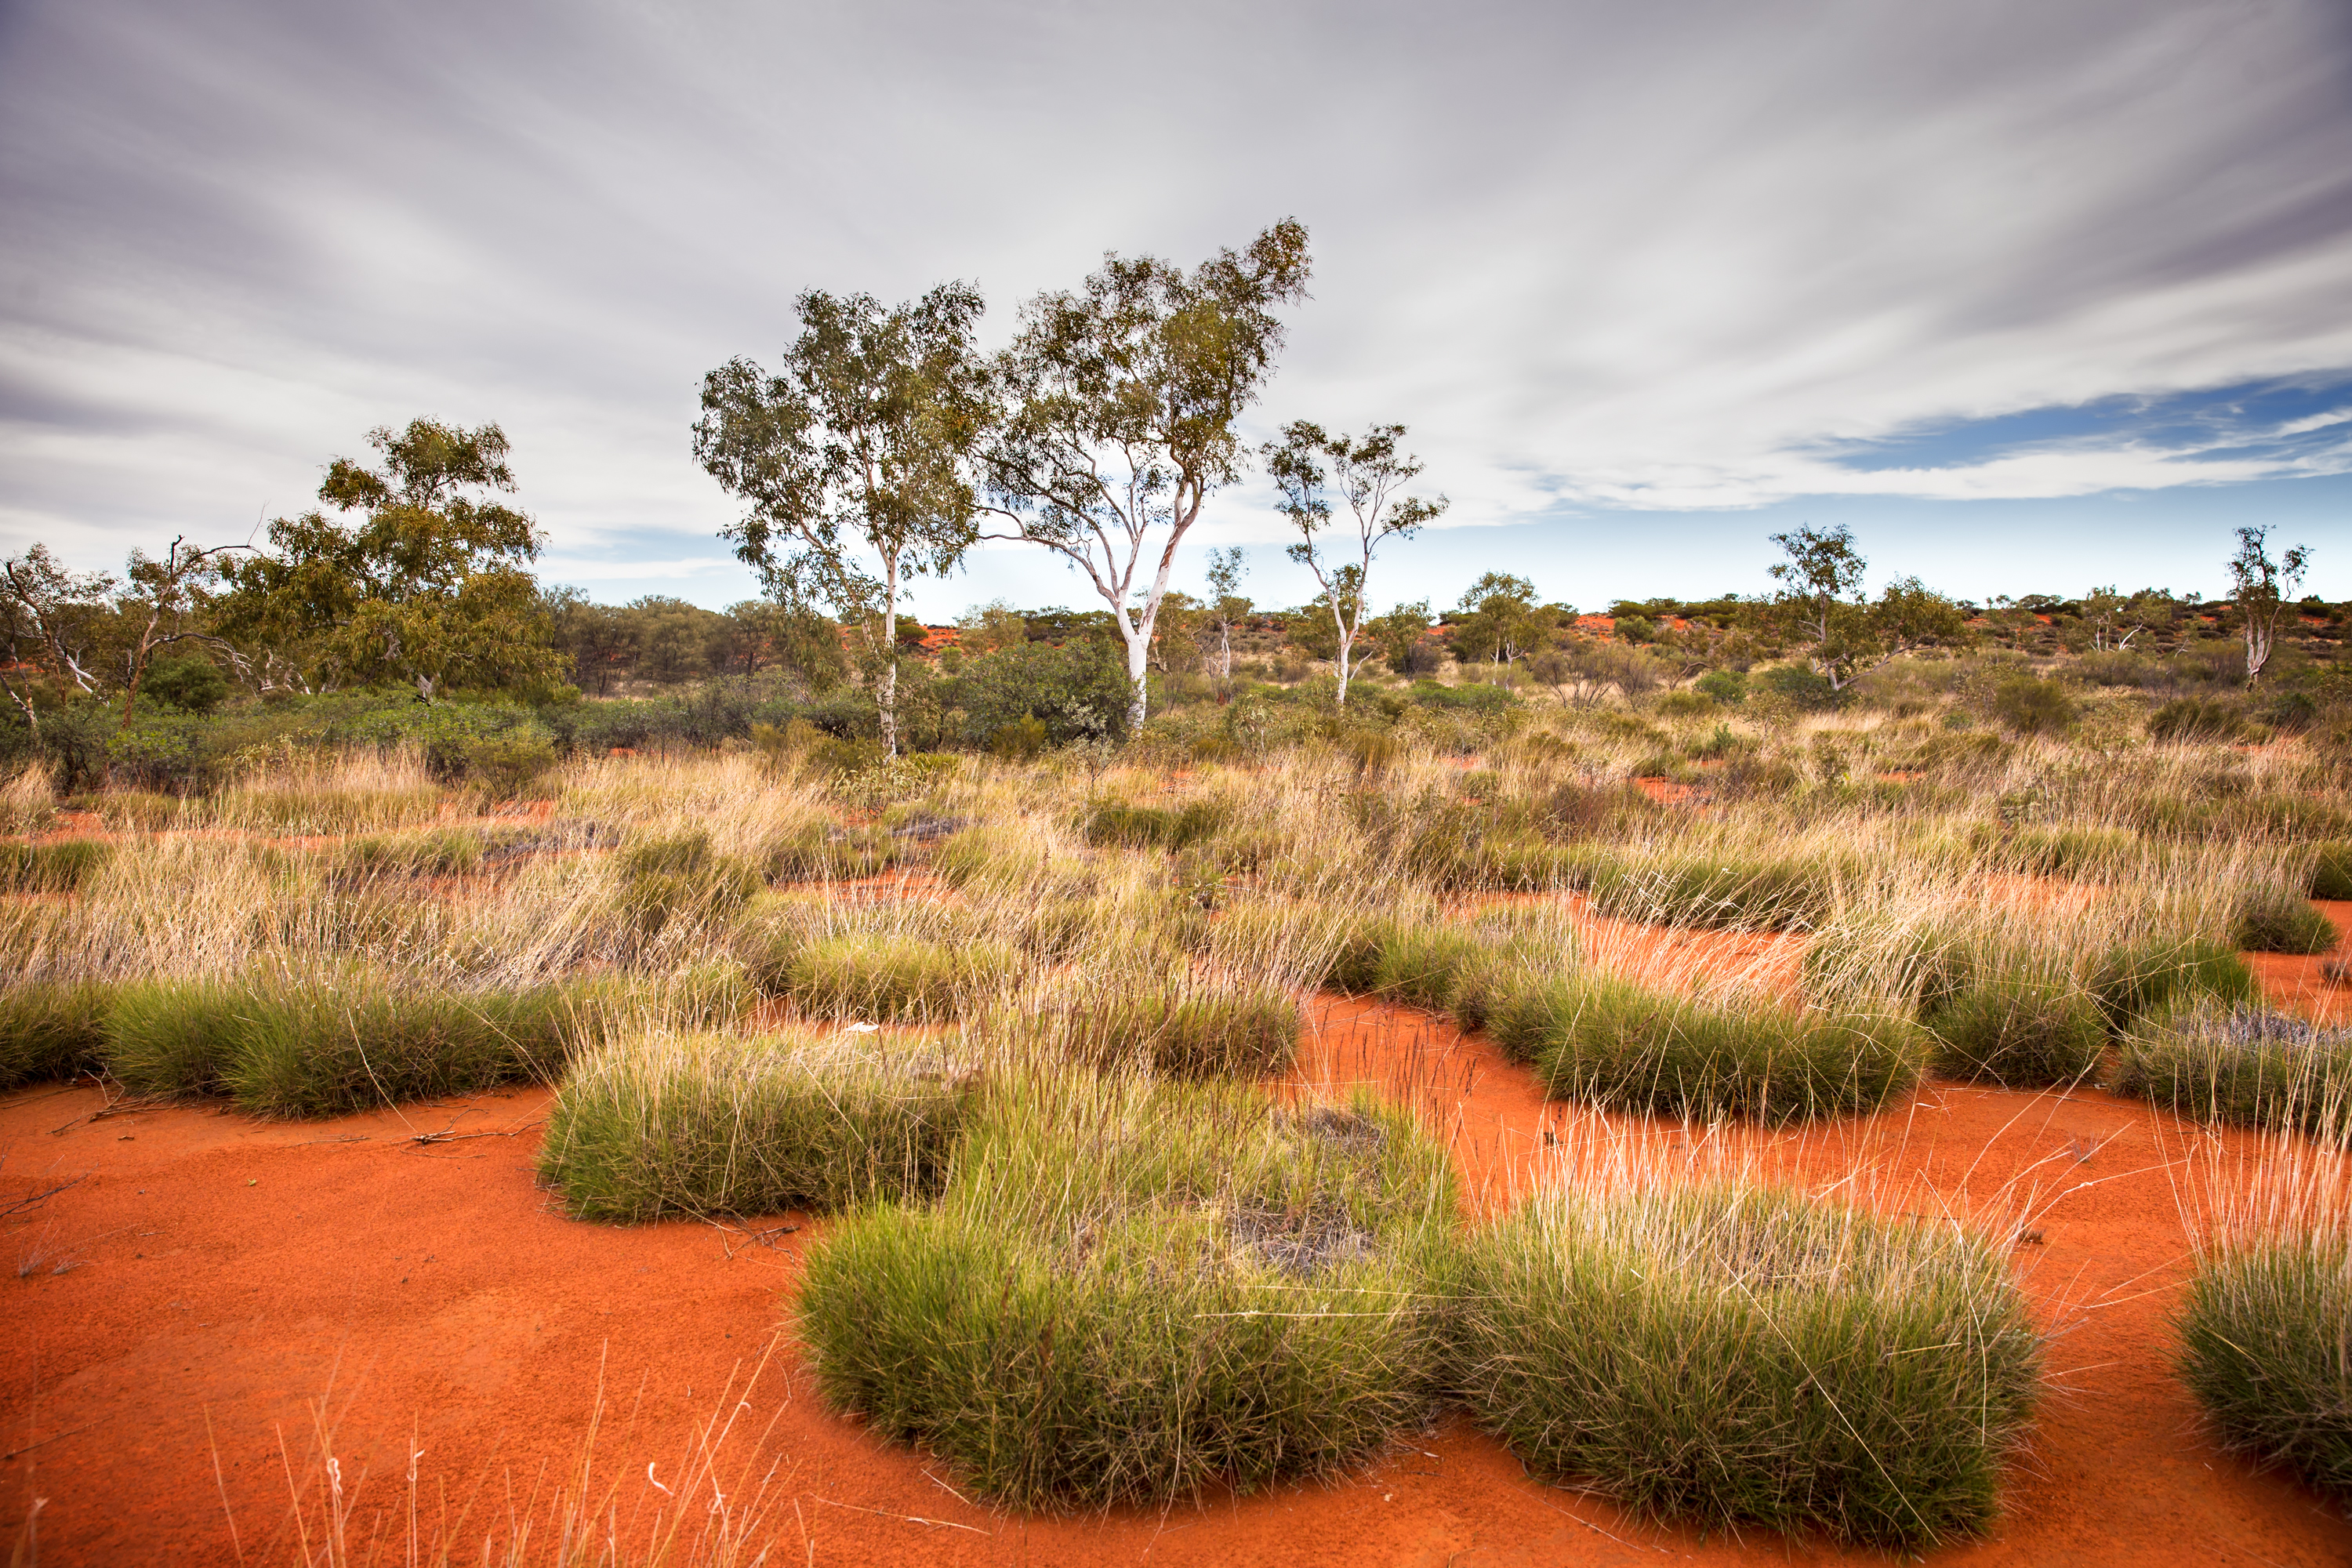 Spinifex for miles